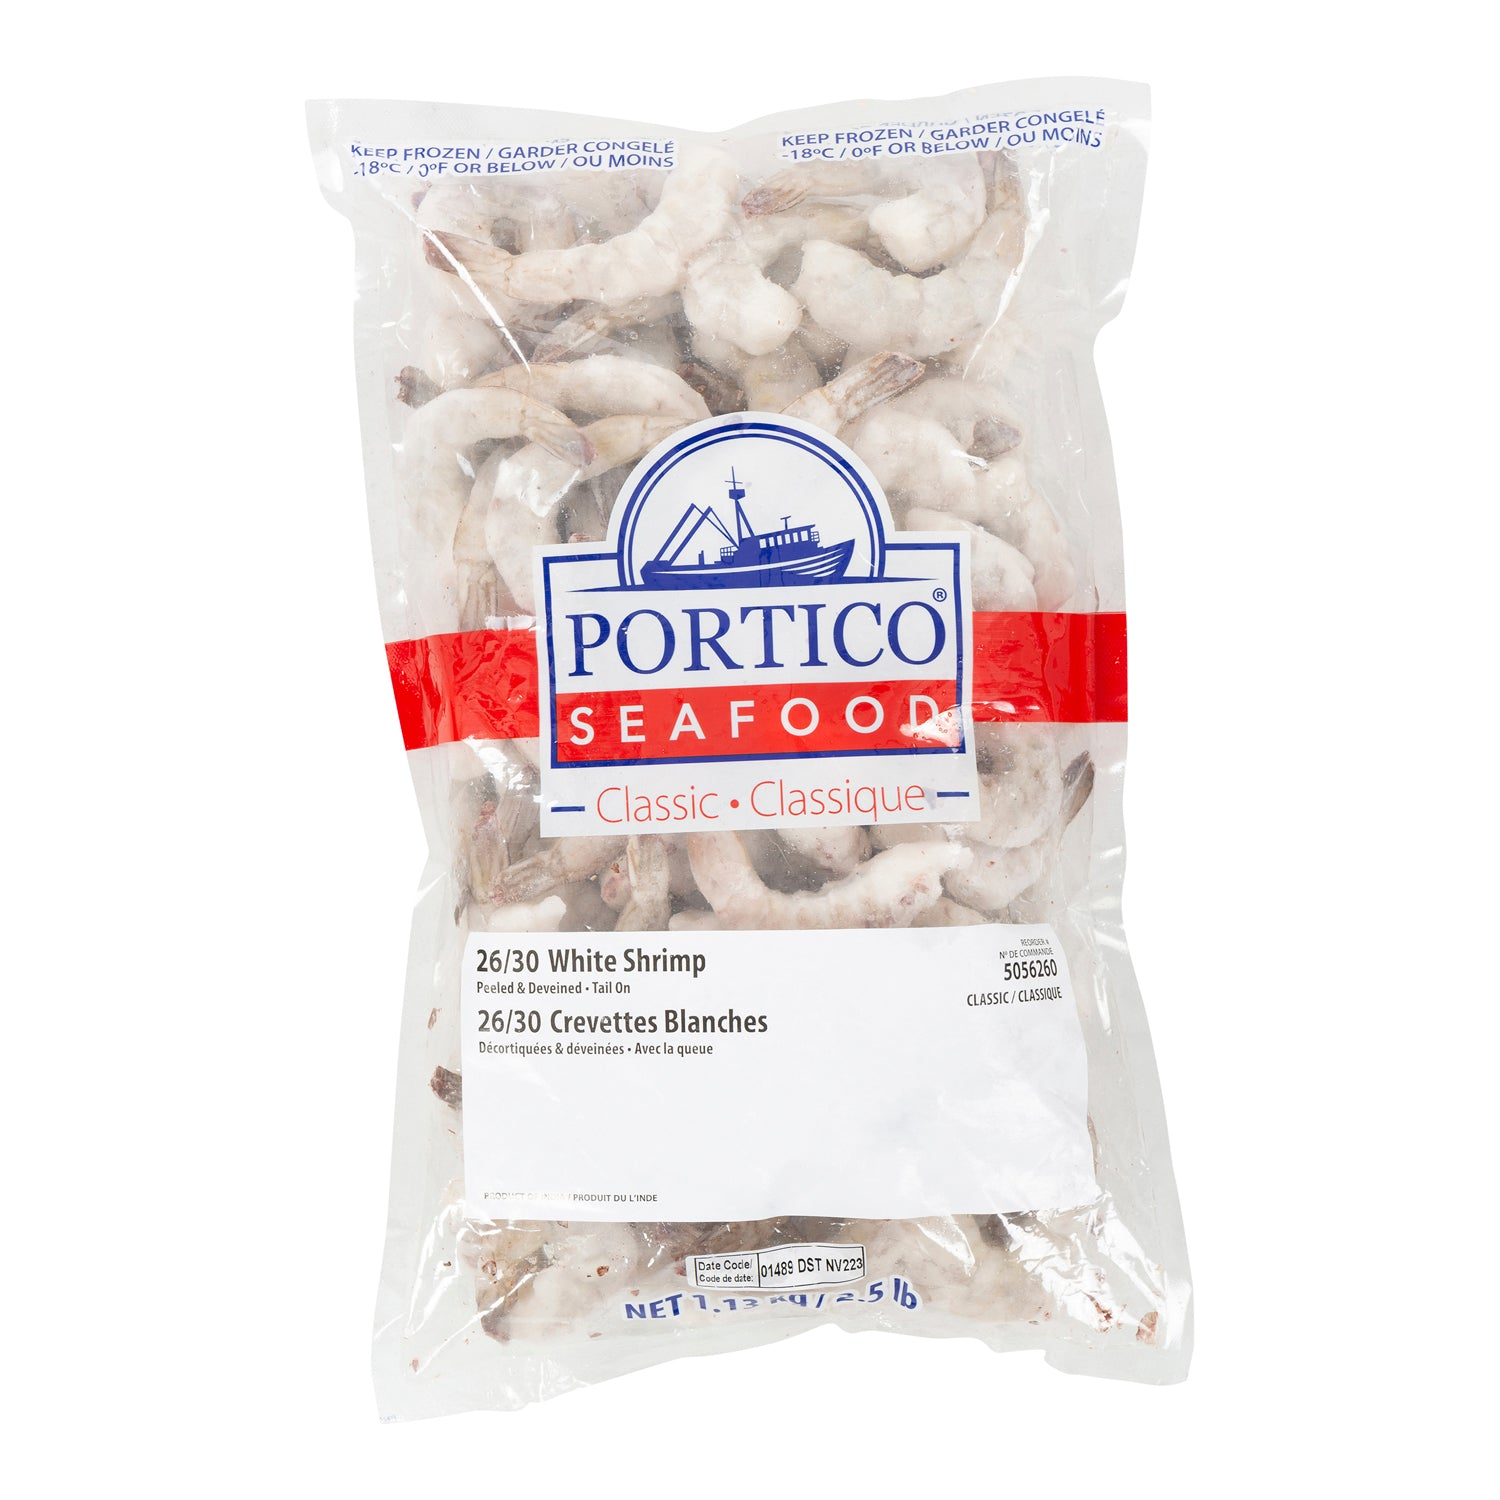 Sysco Portico Frozen Raw Extra Large White Shrimp Peeled & Deveined With Tail On (26-30 shrimp per lb) 2.5 lb - 2 Pack [$9.40/lb]